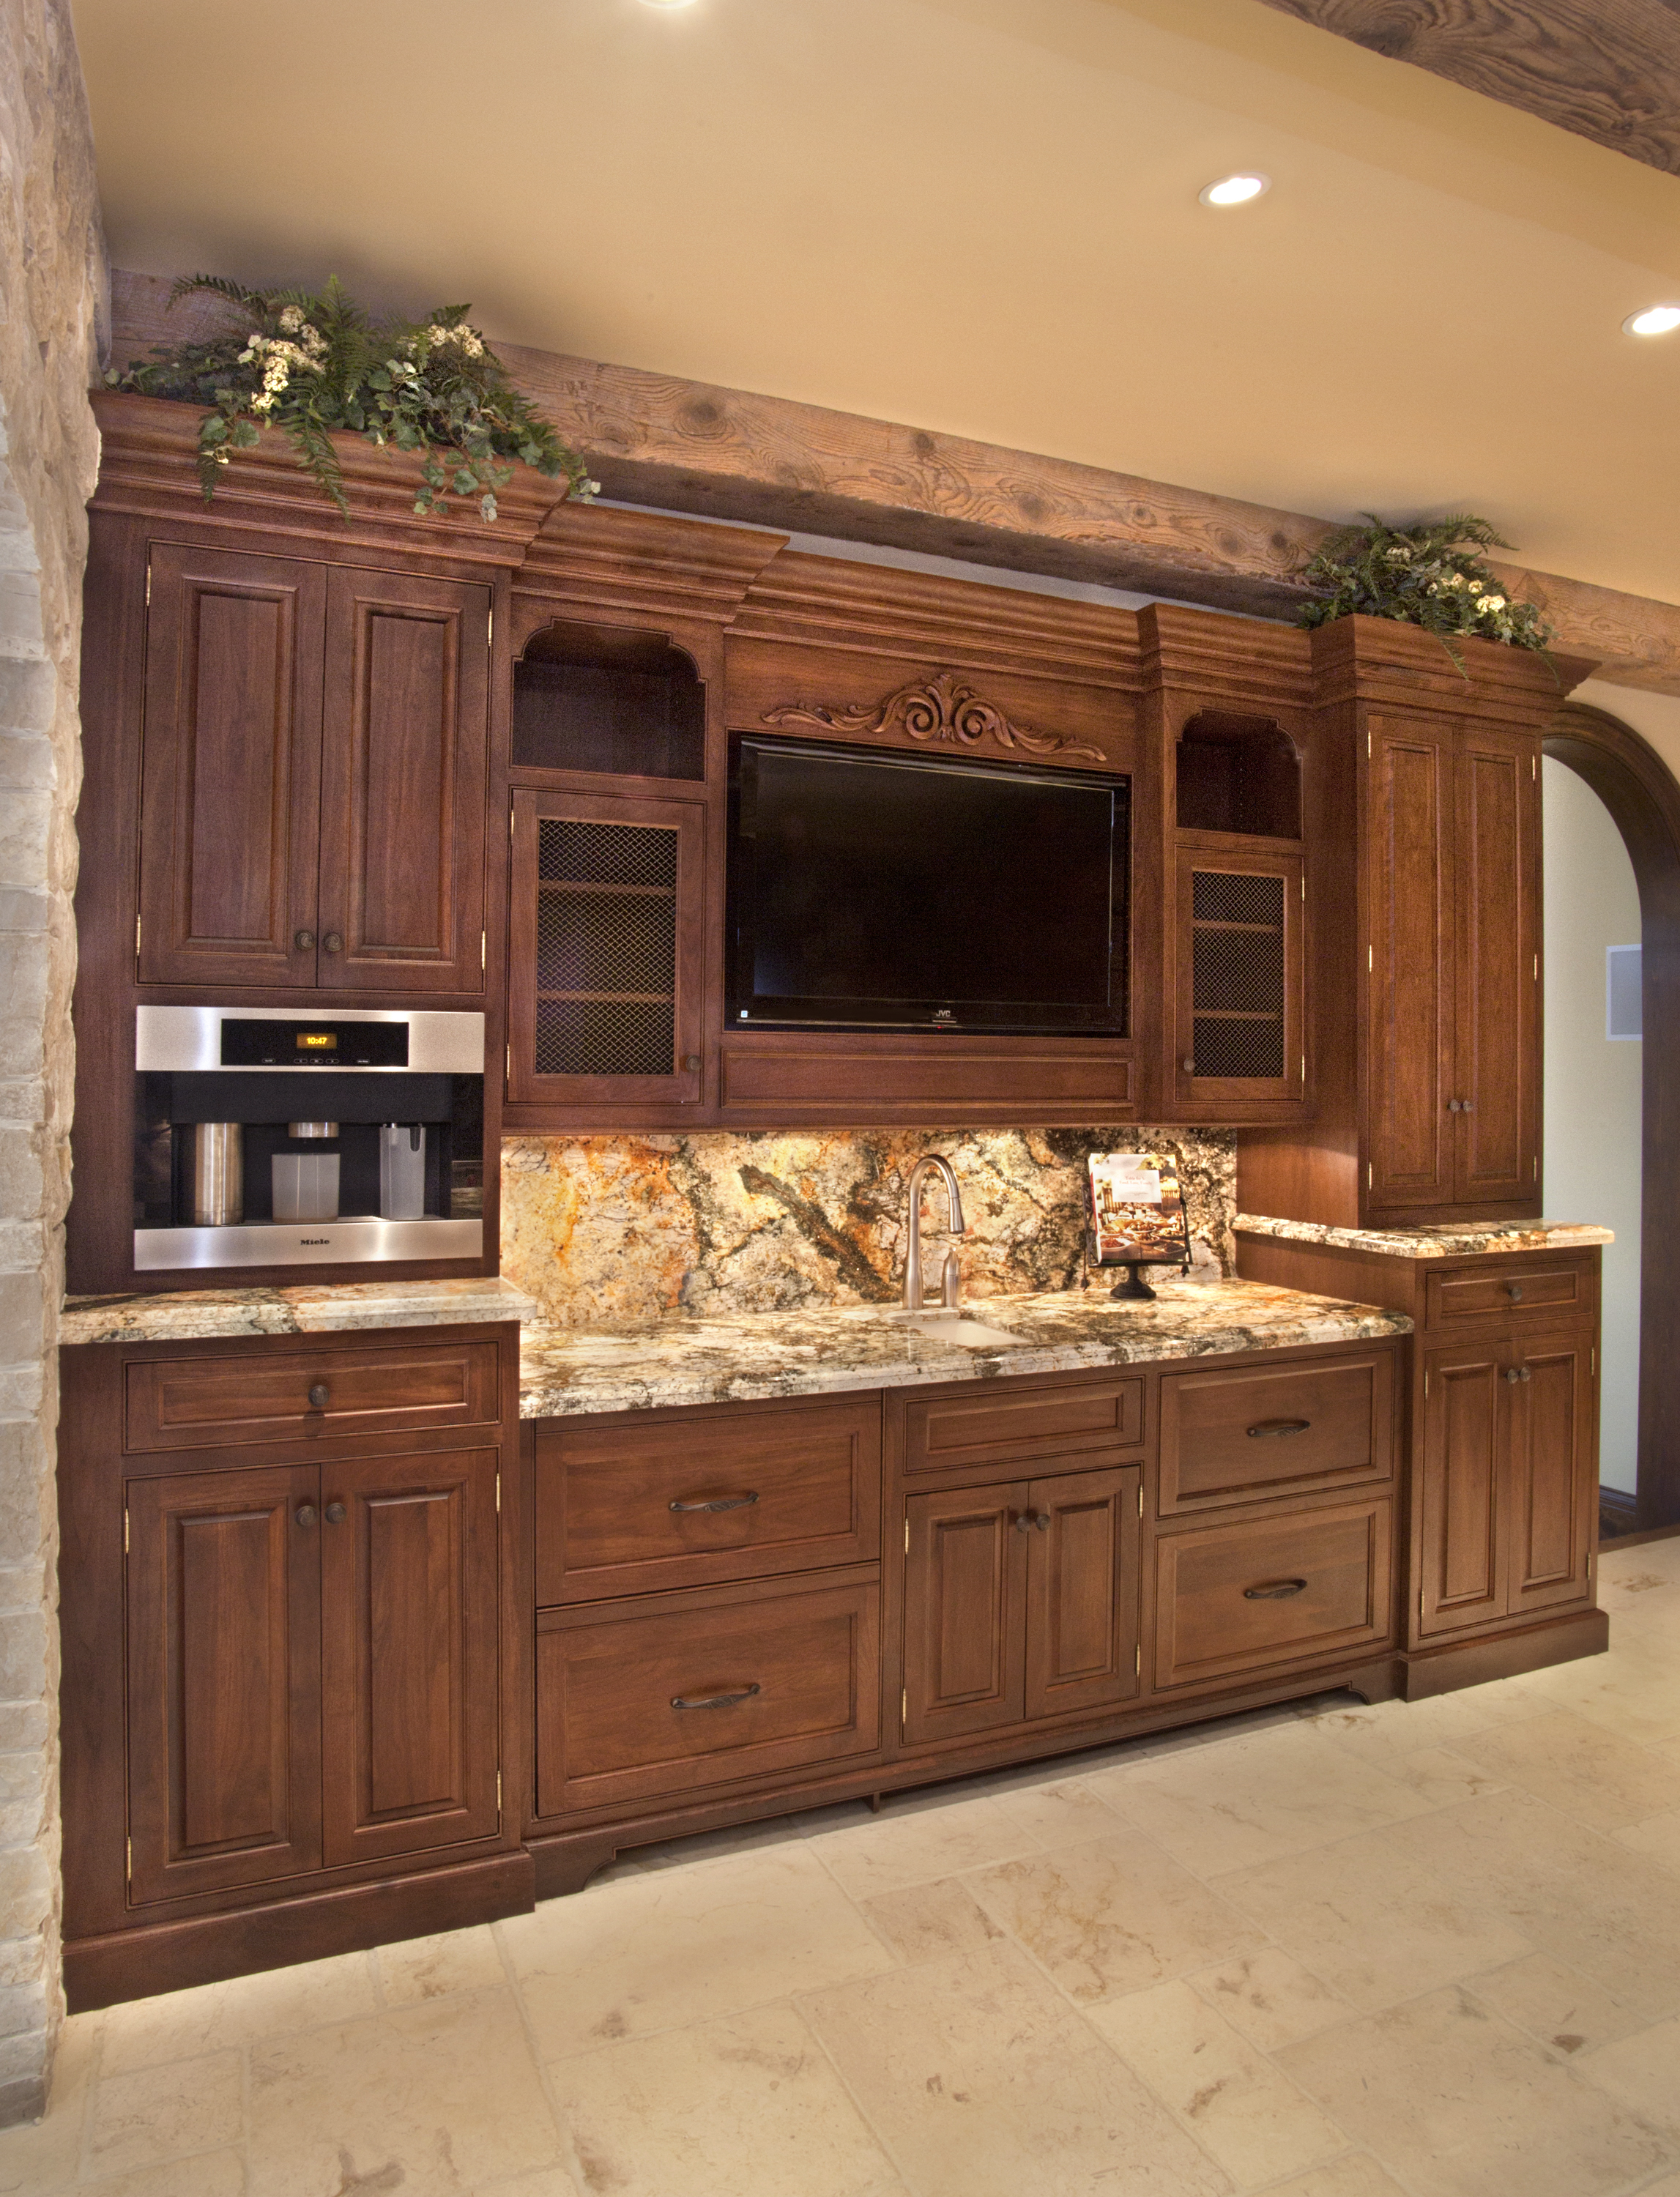 Custom kitchen cabinets kitchen remodeling kitchen for Custom cabinets